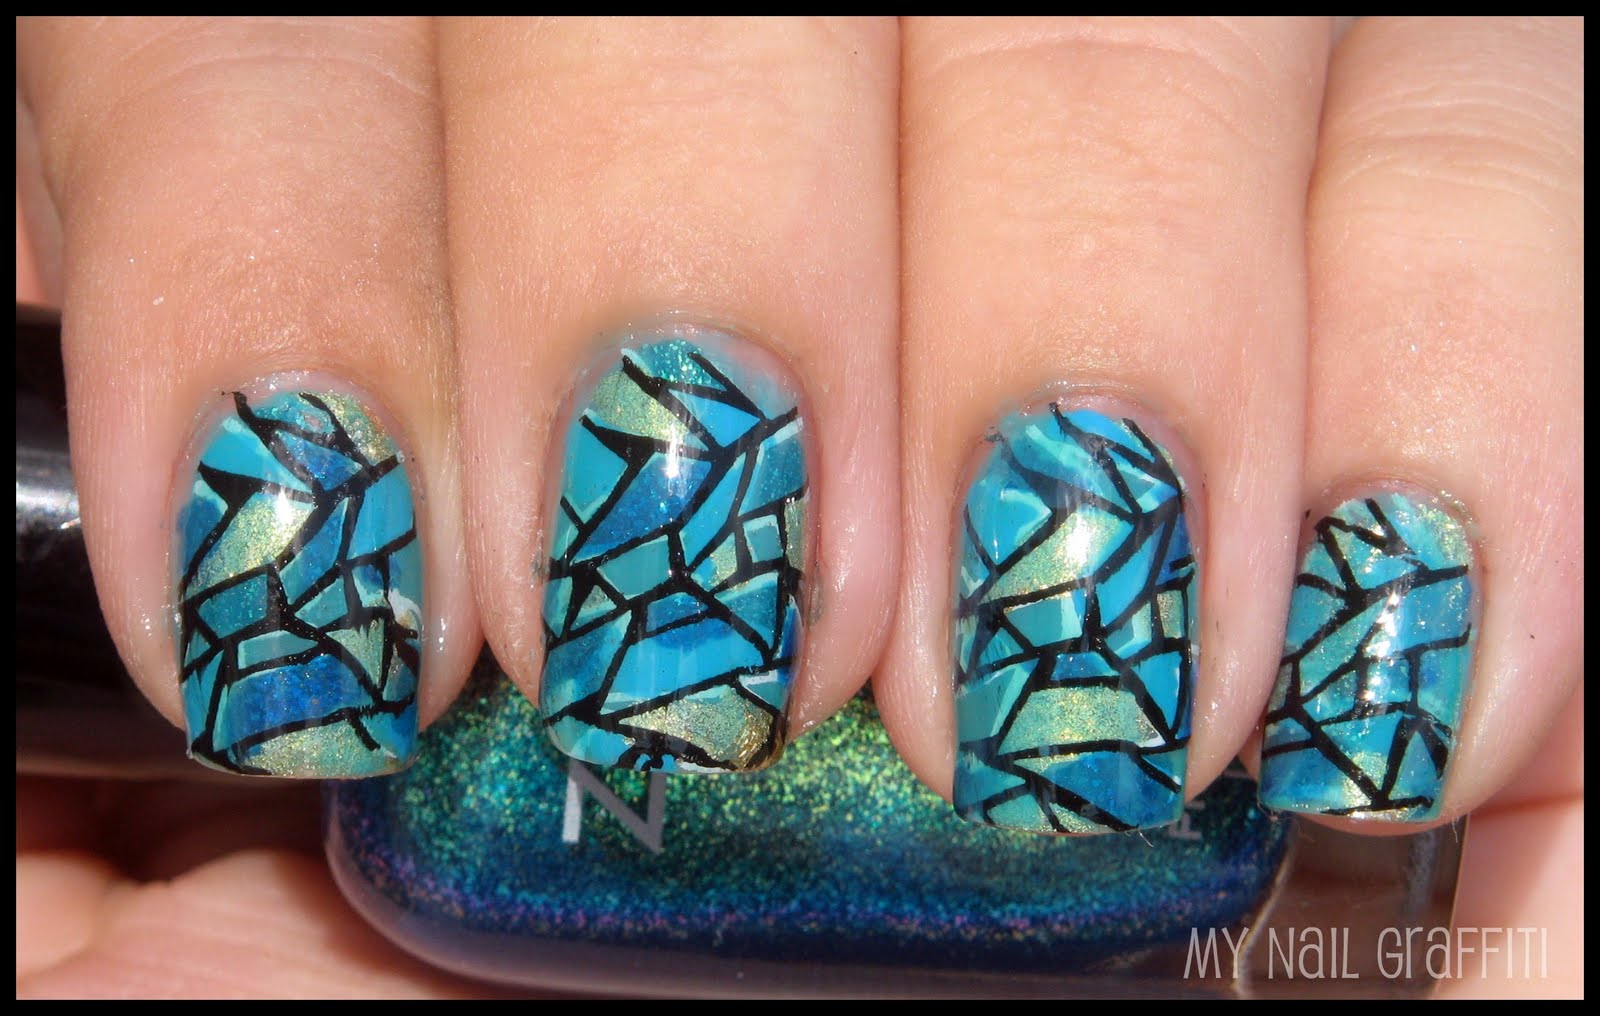 My Nail Graffiti: Blue Stained Glass Nails